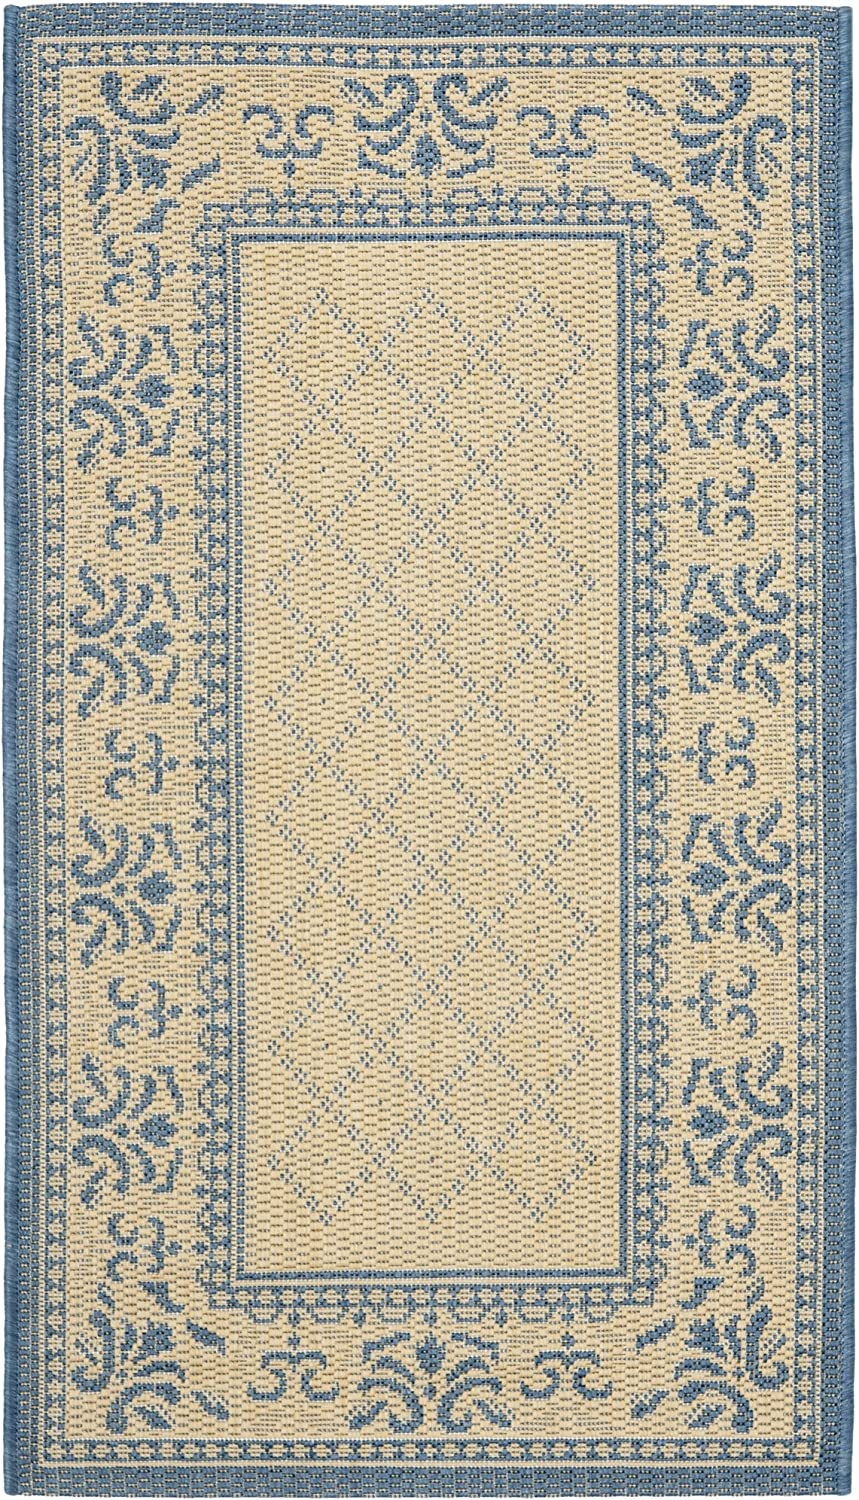 Safavieh Courtyard Collection CY0901-3101 Natural and bluee Indoor Outdoor Area Rug, 2 feet by 3 feet 7 inches (2' x 3'7 )